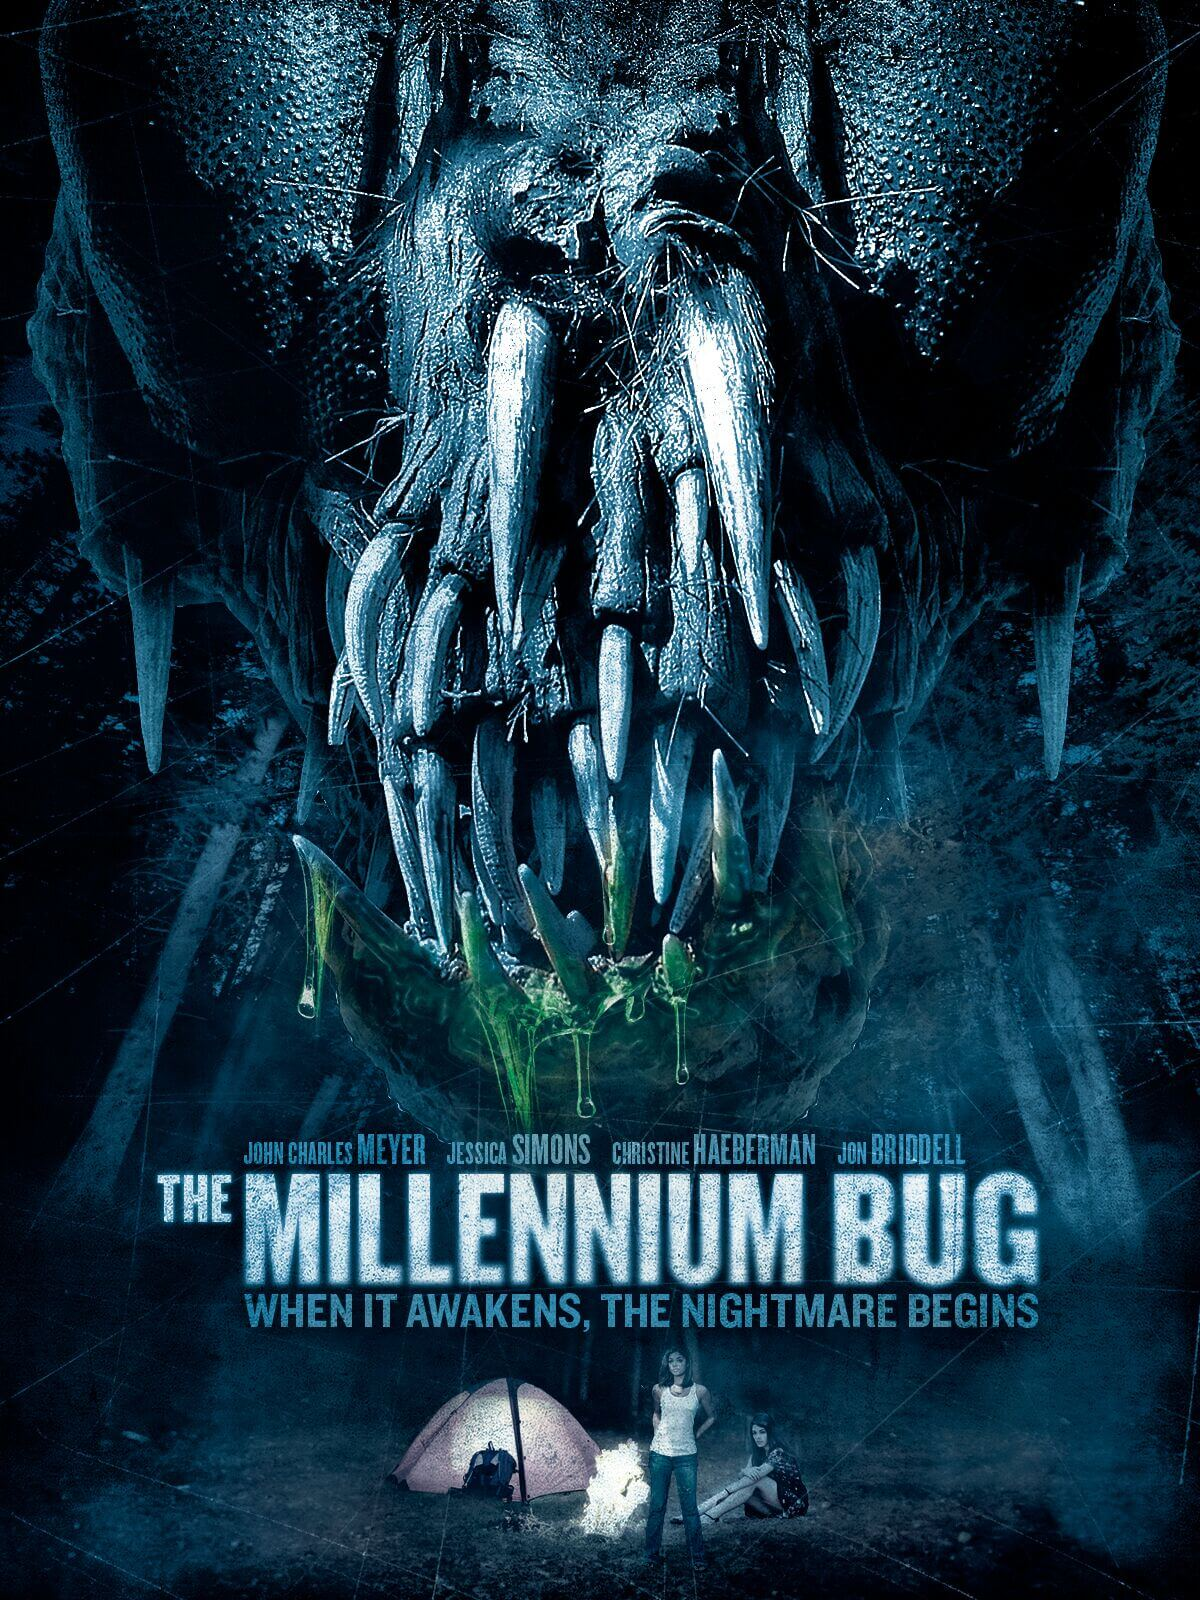 The Millennium Bug 1200x1600 THE MILLENNIUM BUG